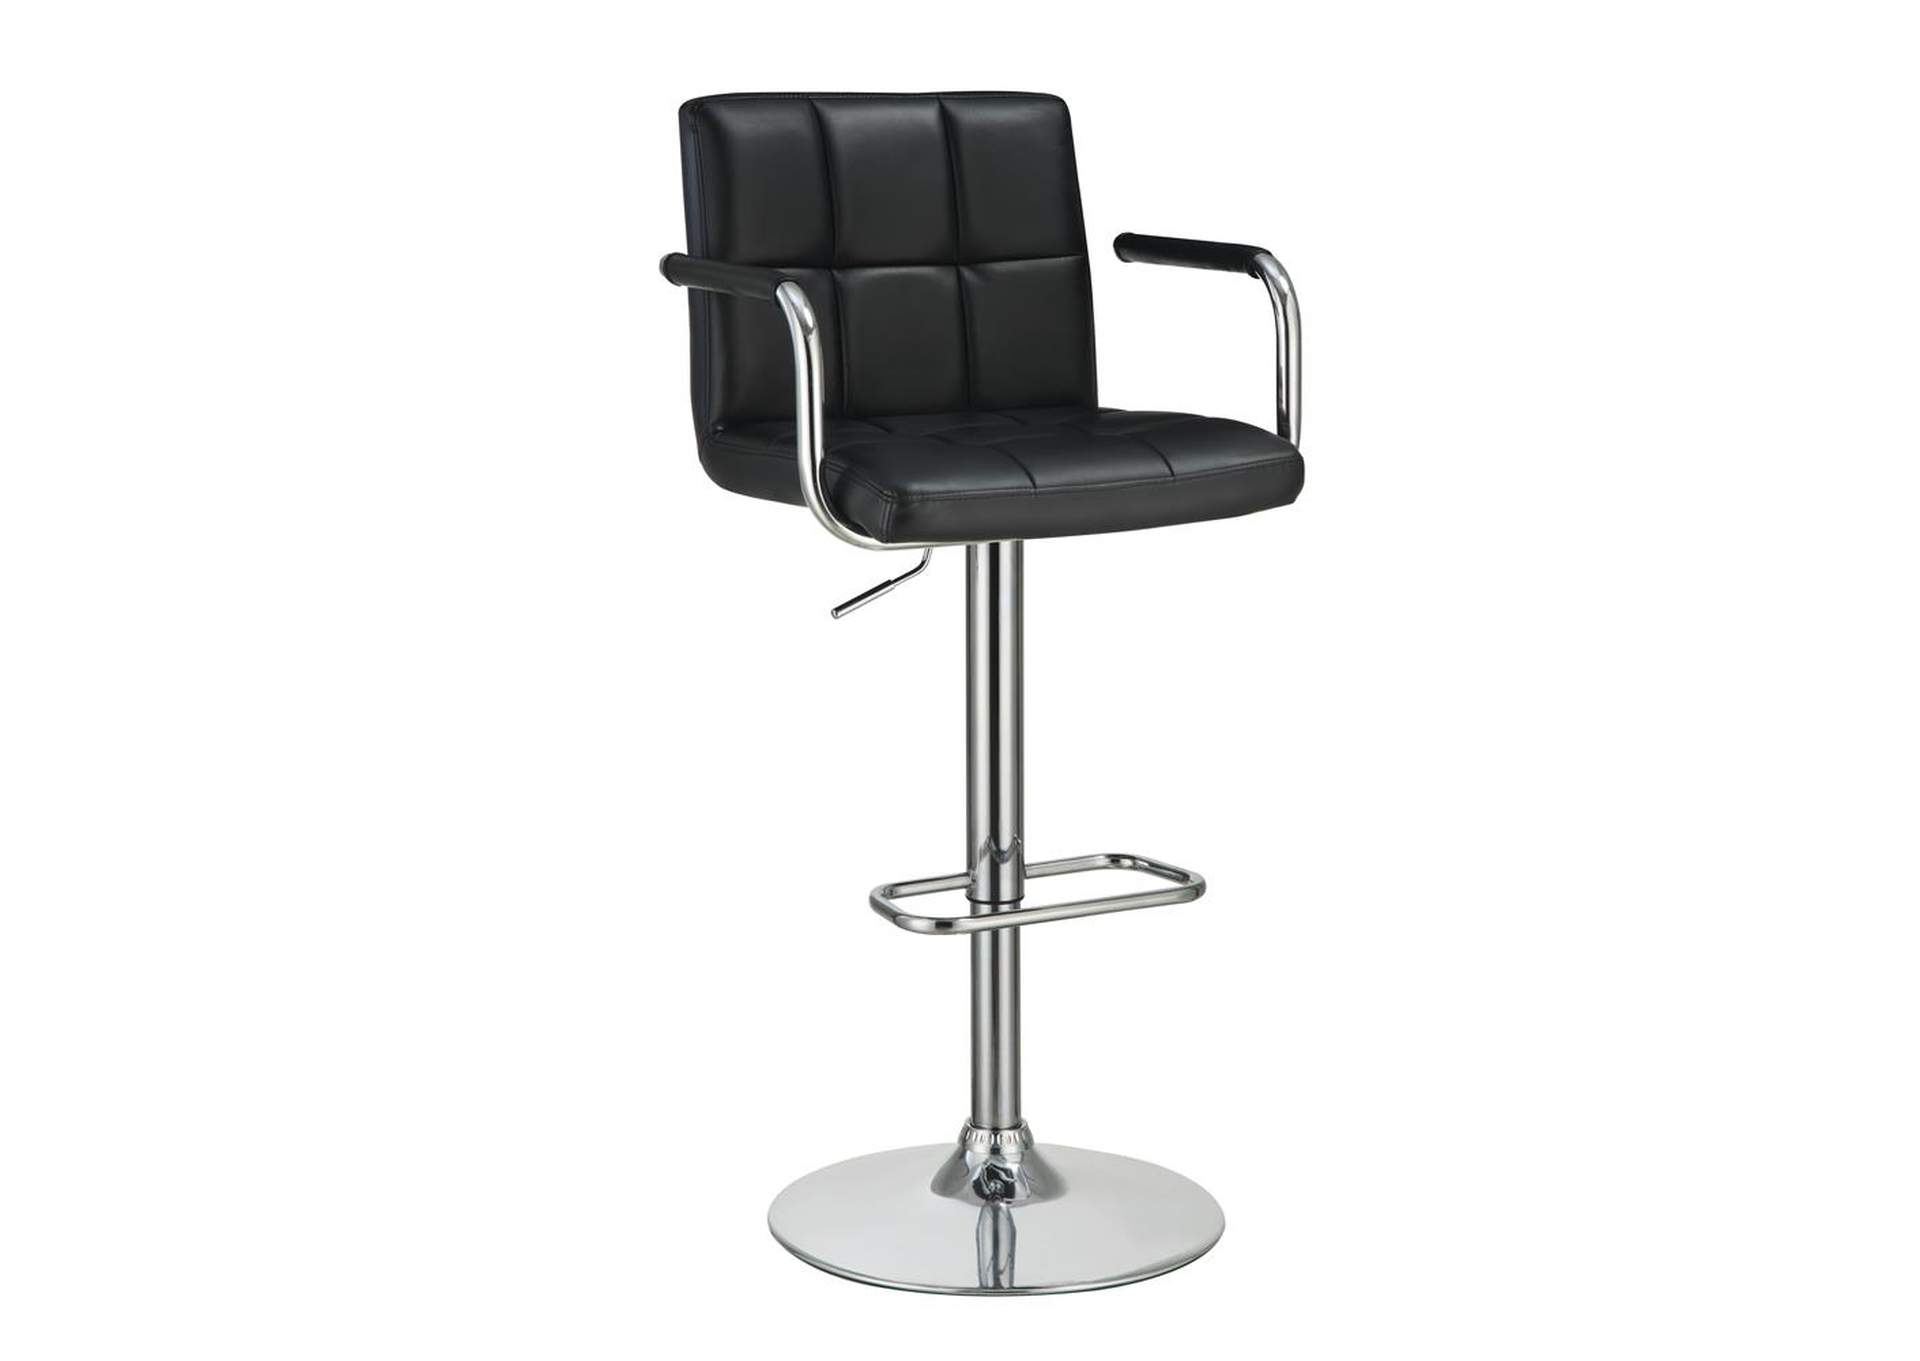 Adjustable Height Bar Stool Black And Chrome,Coaster Furniture